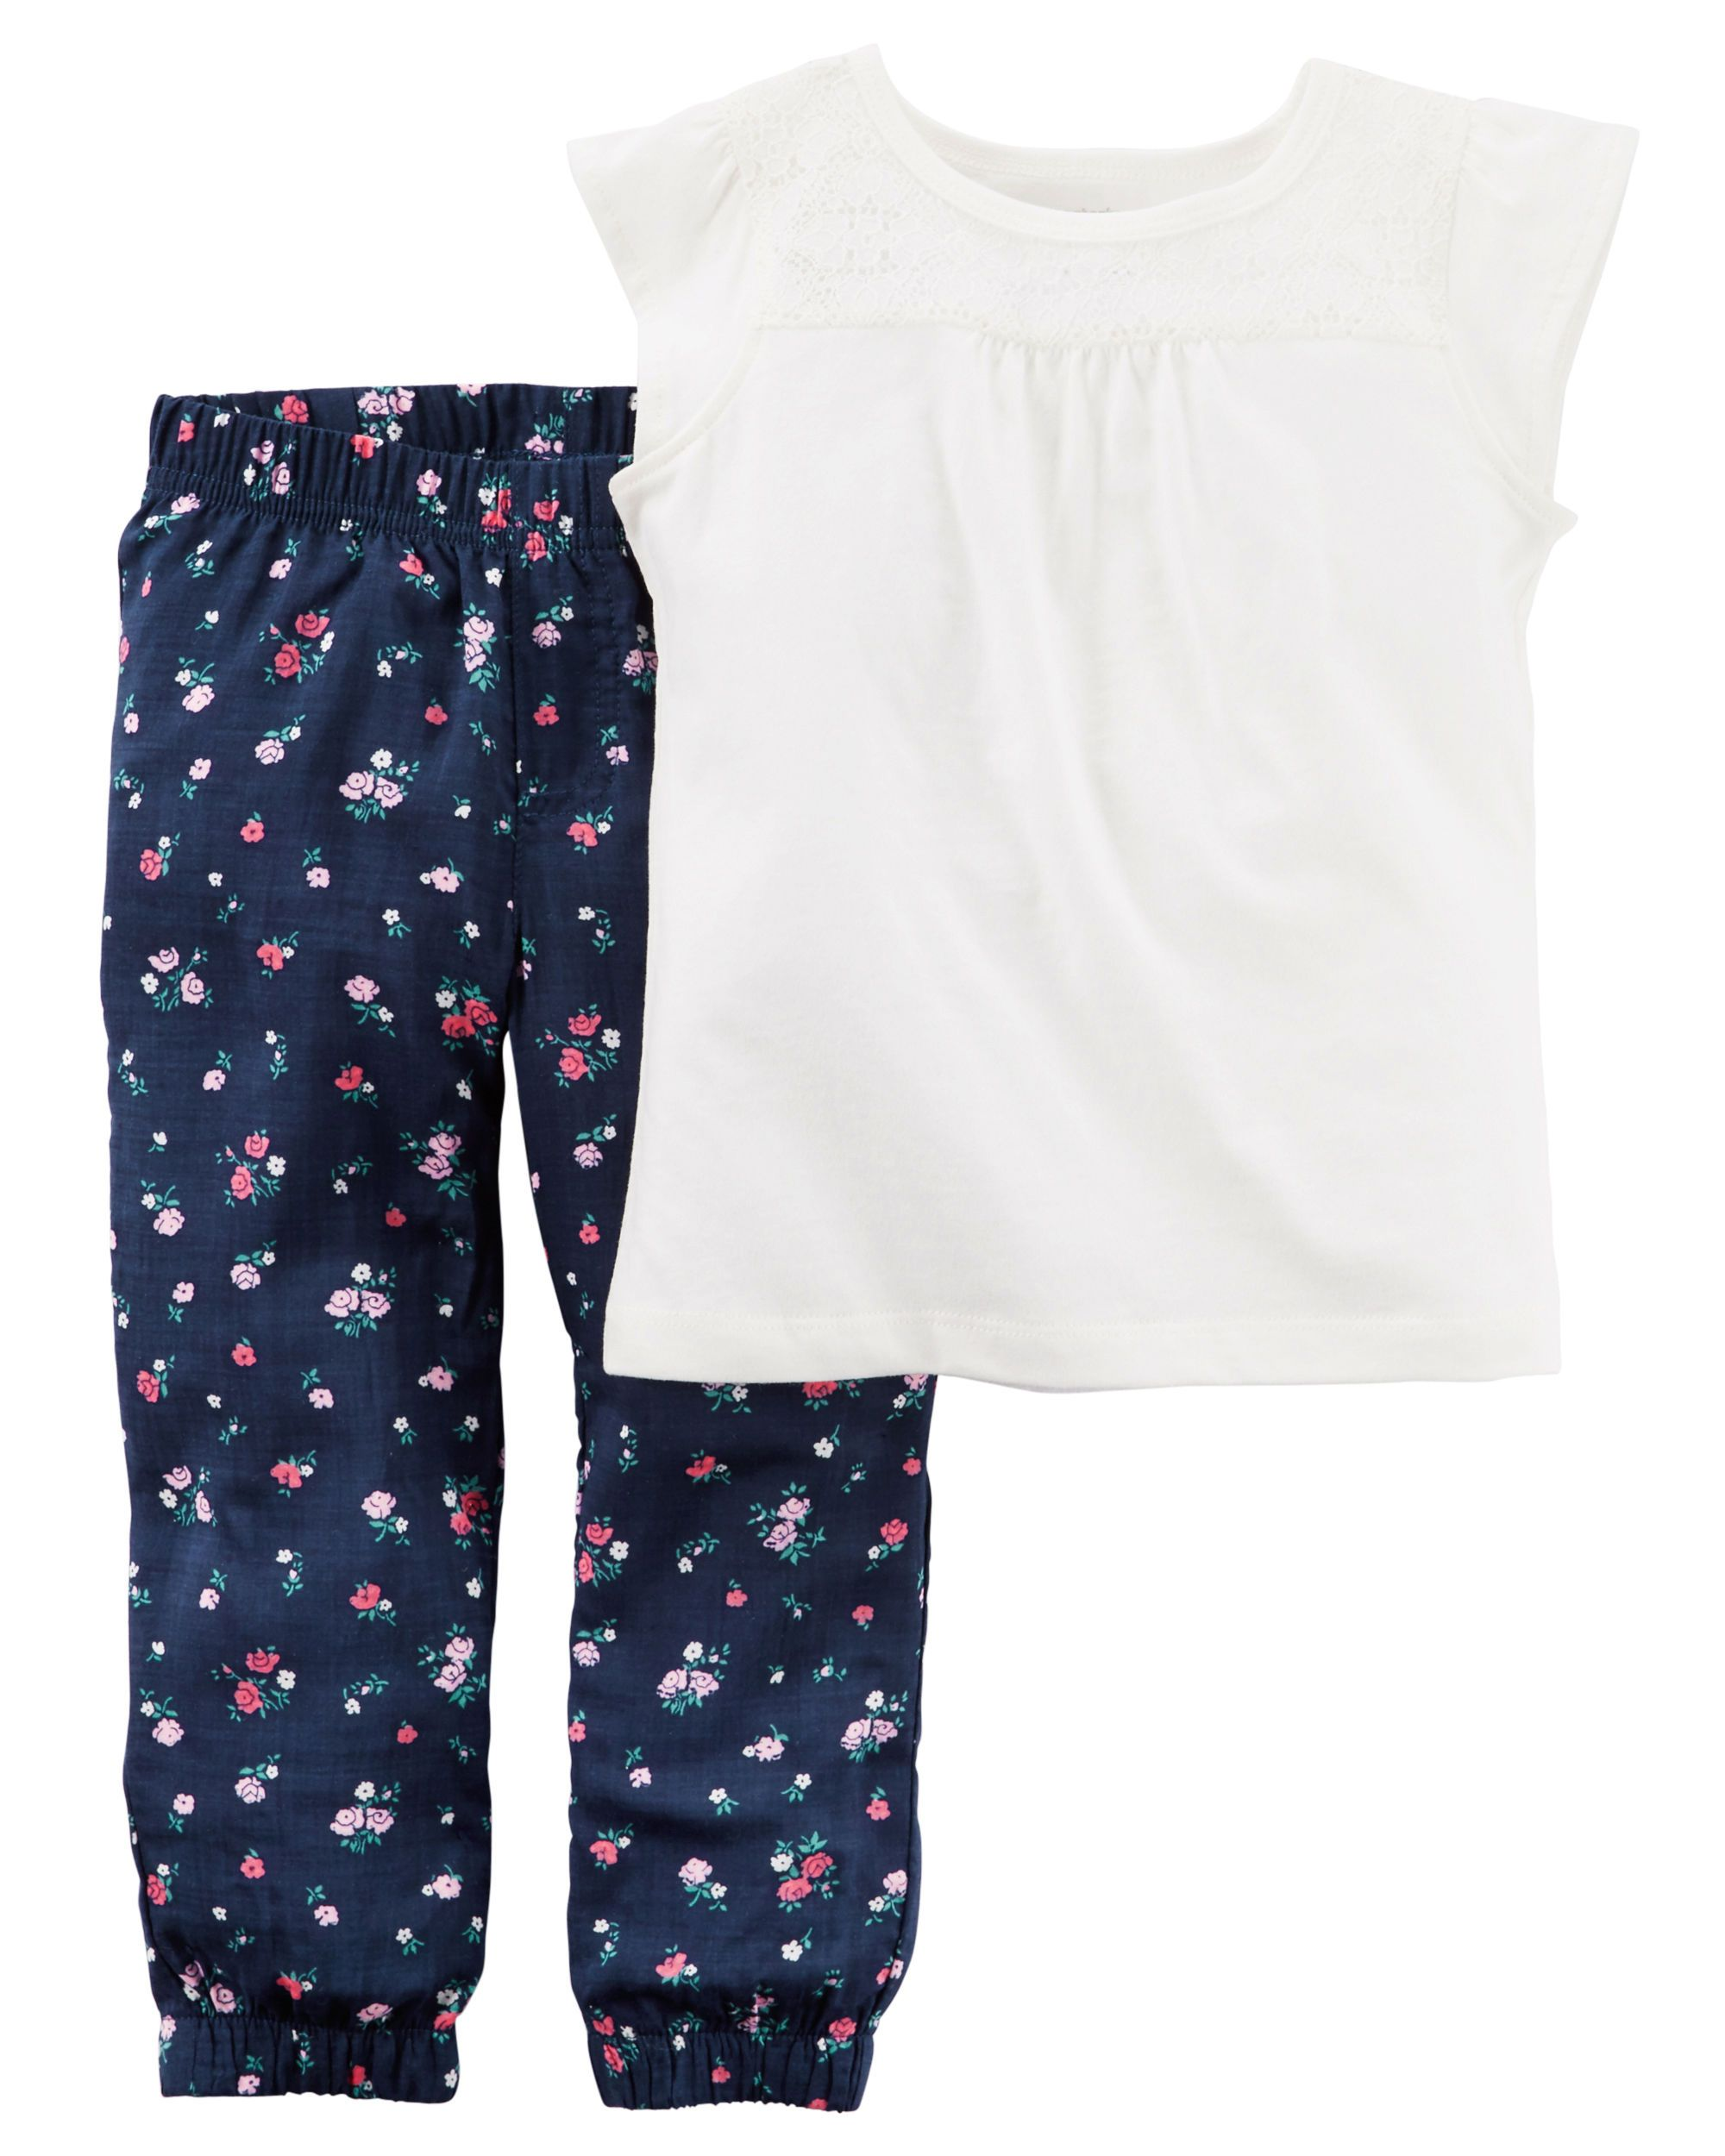 Carters Little Girls Joggers Toddler//Kid 2T - Navy